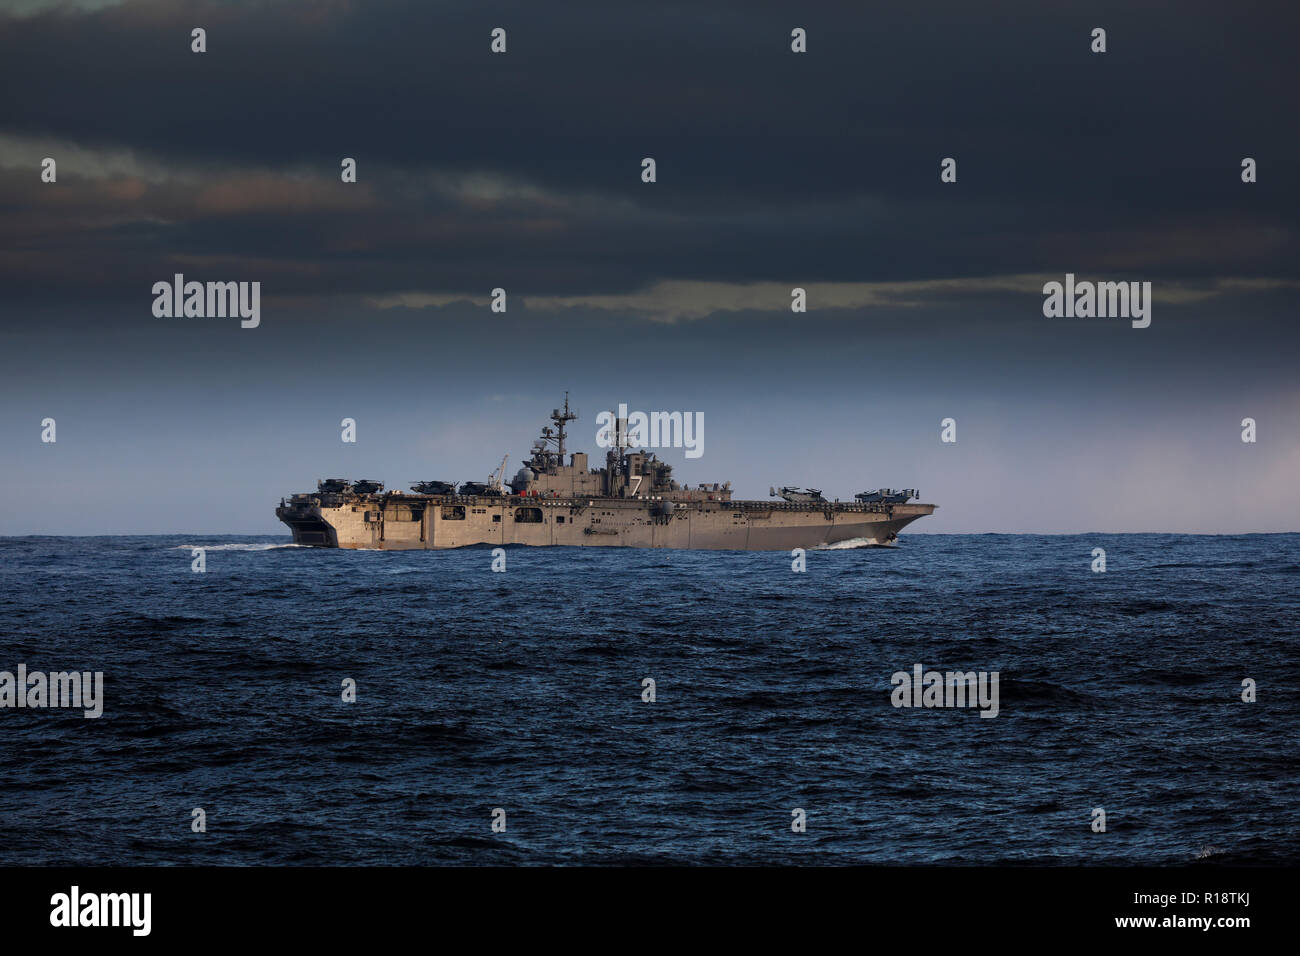 USS Iwo Jima assault carrier of the US Navy with tilt rotor V22 Osprey US Marine Corps aircraft embarked - Stock Image